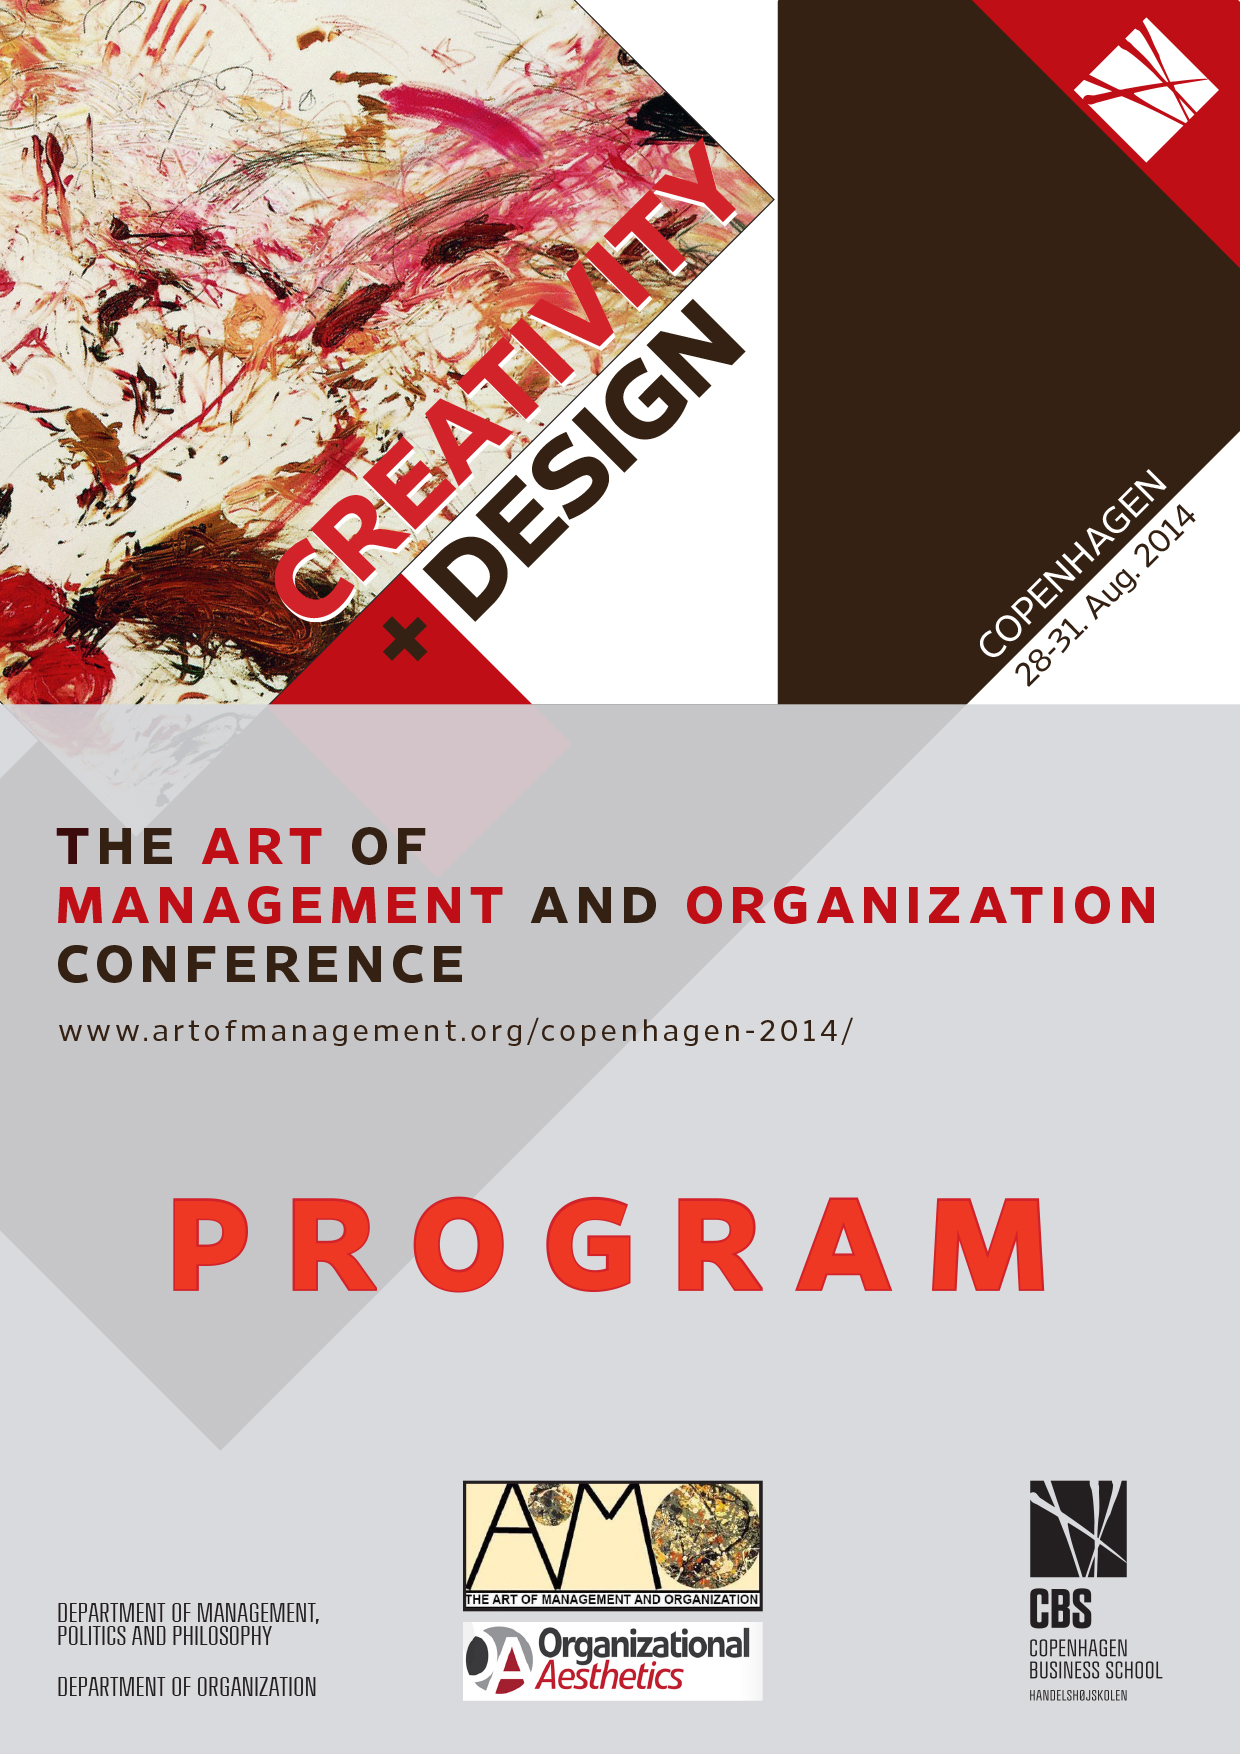 Art of Management and Organization Conference – Copenhagen 2014